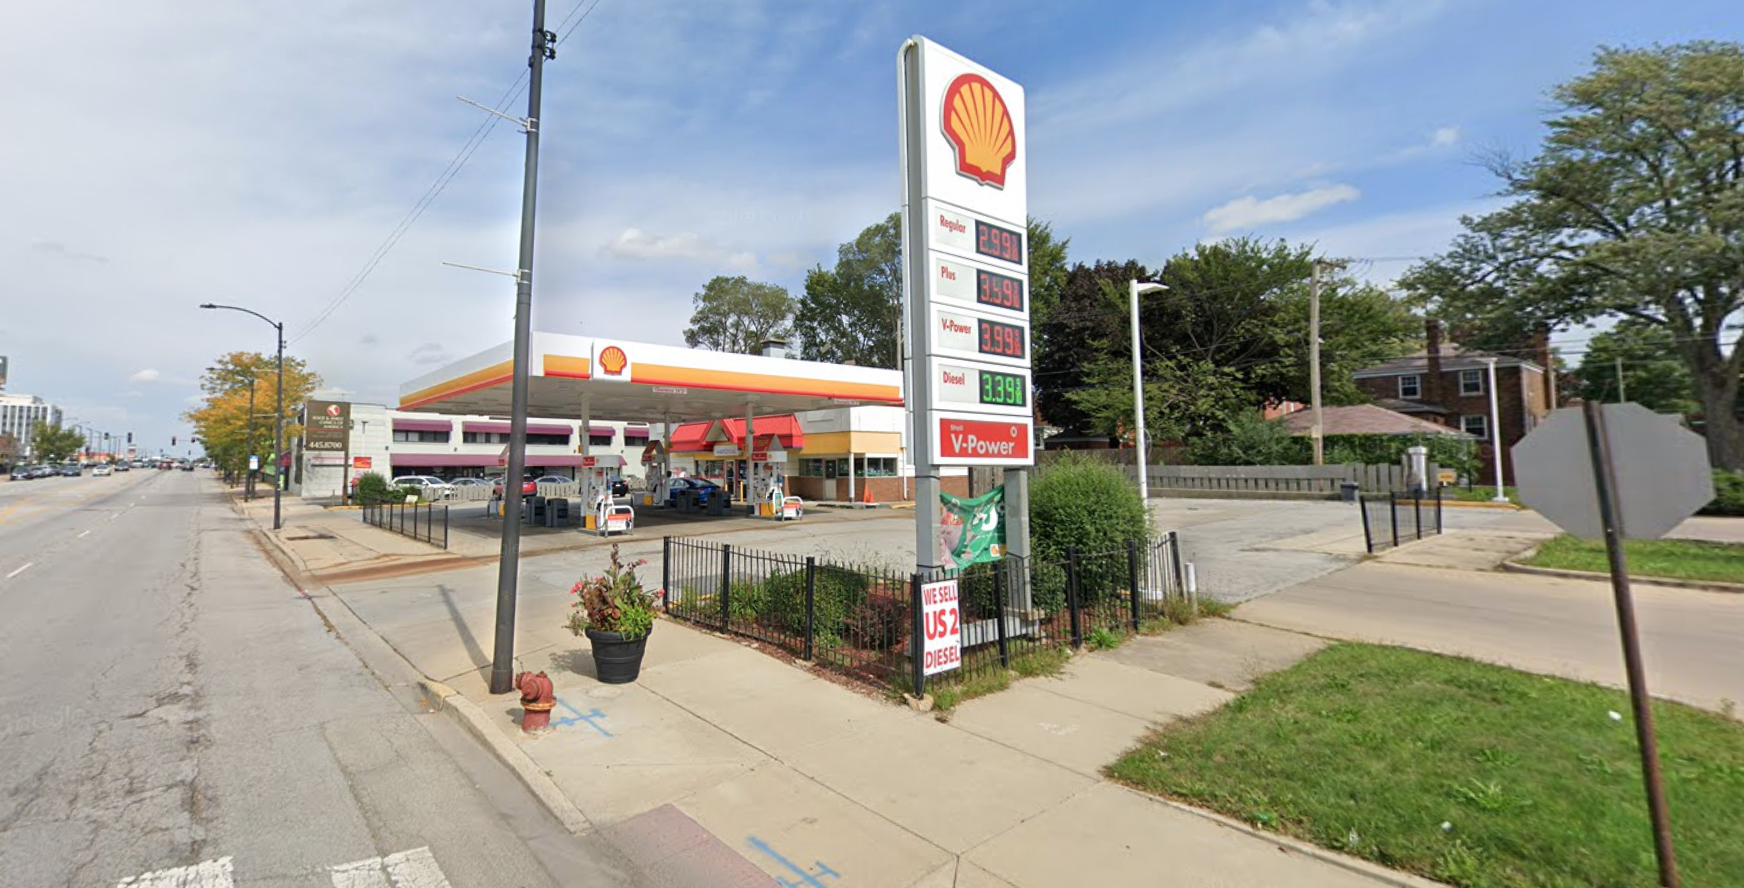 Police are warning residents about two vehicle thefts since June 19, 2020, at a gas station in the 9900 block of South Western Avenue.